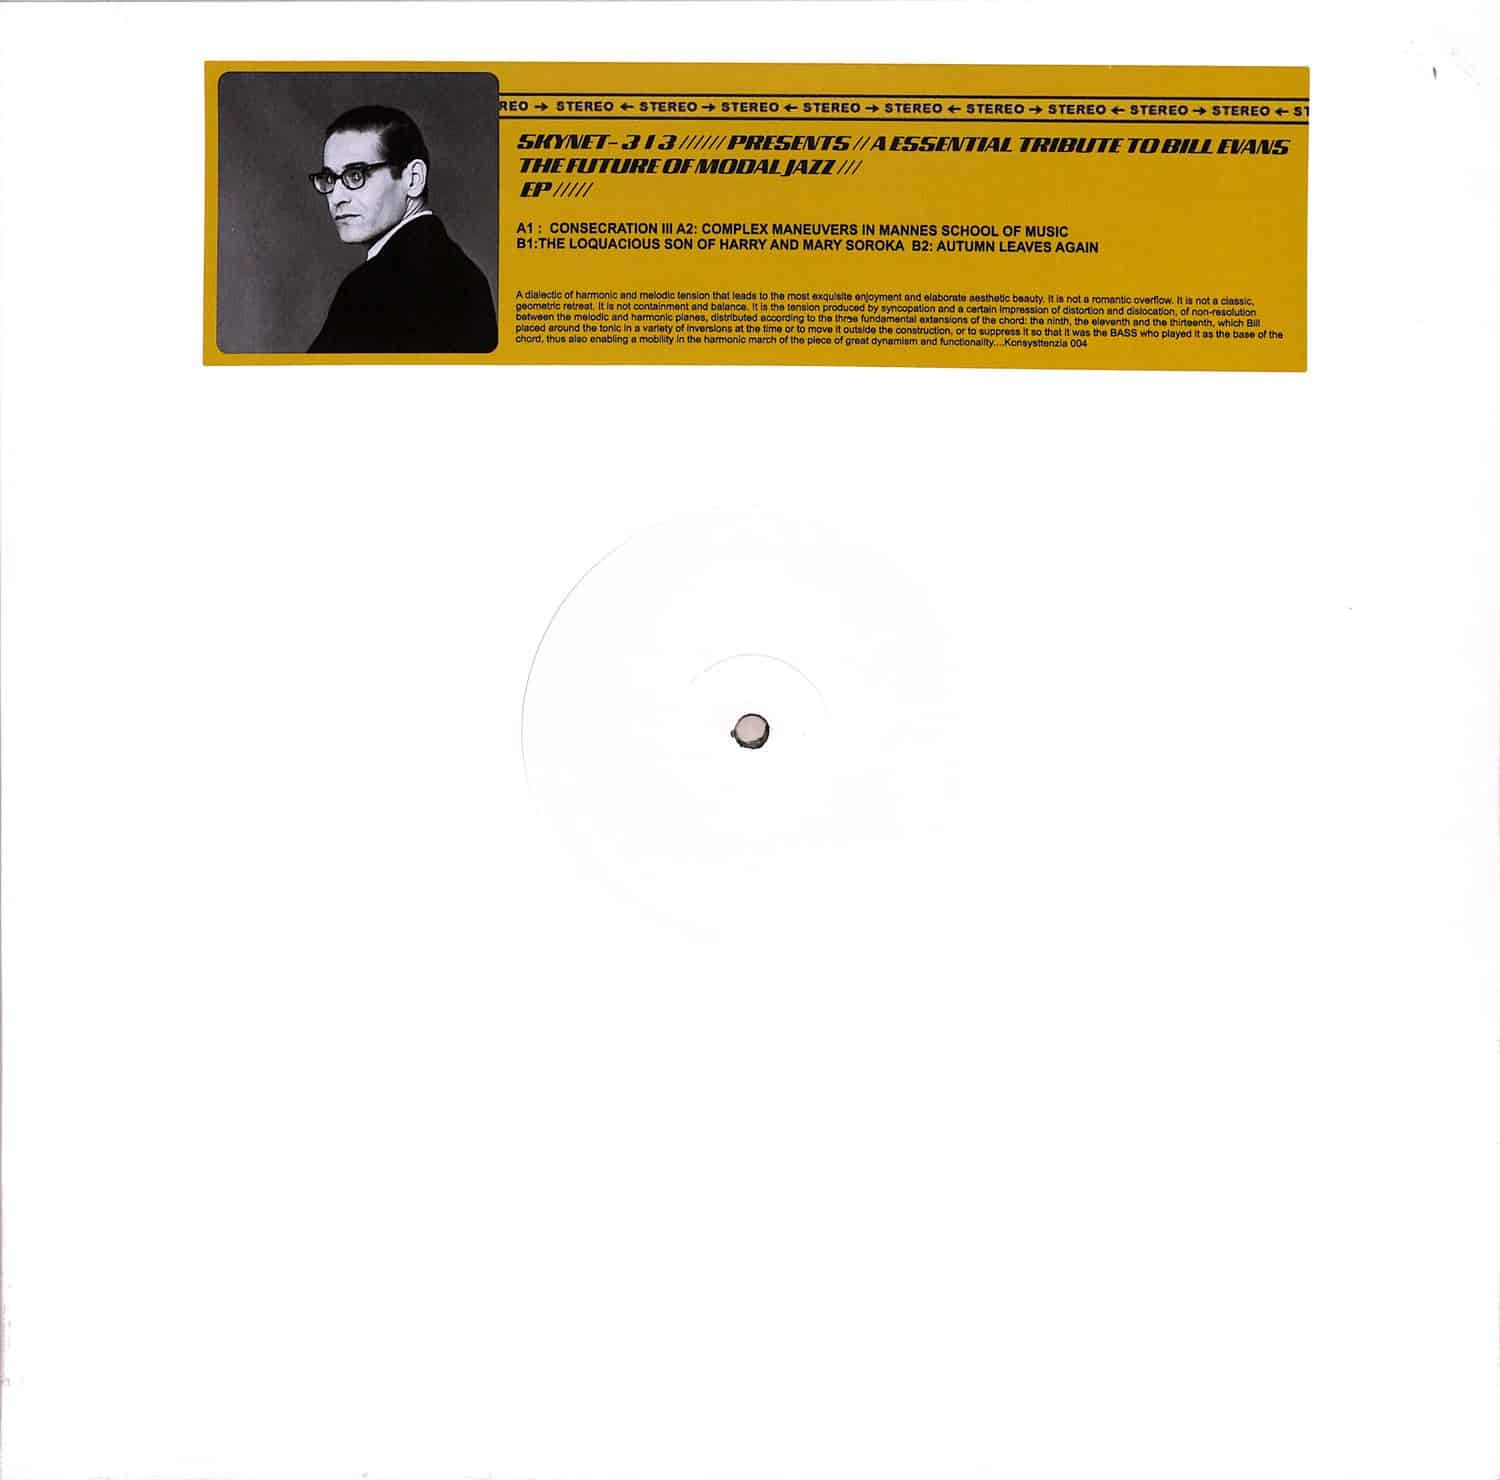 Skynet-313 - PRESENTS: A ESSENTIAL TRIBUTE TO BILL EVANS THE FUTURE OF MODAL JAZZ